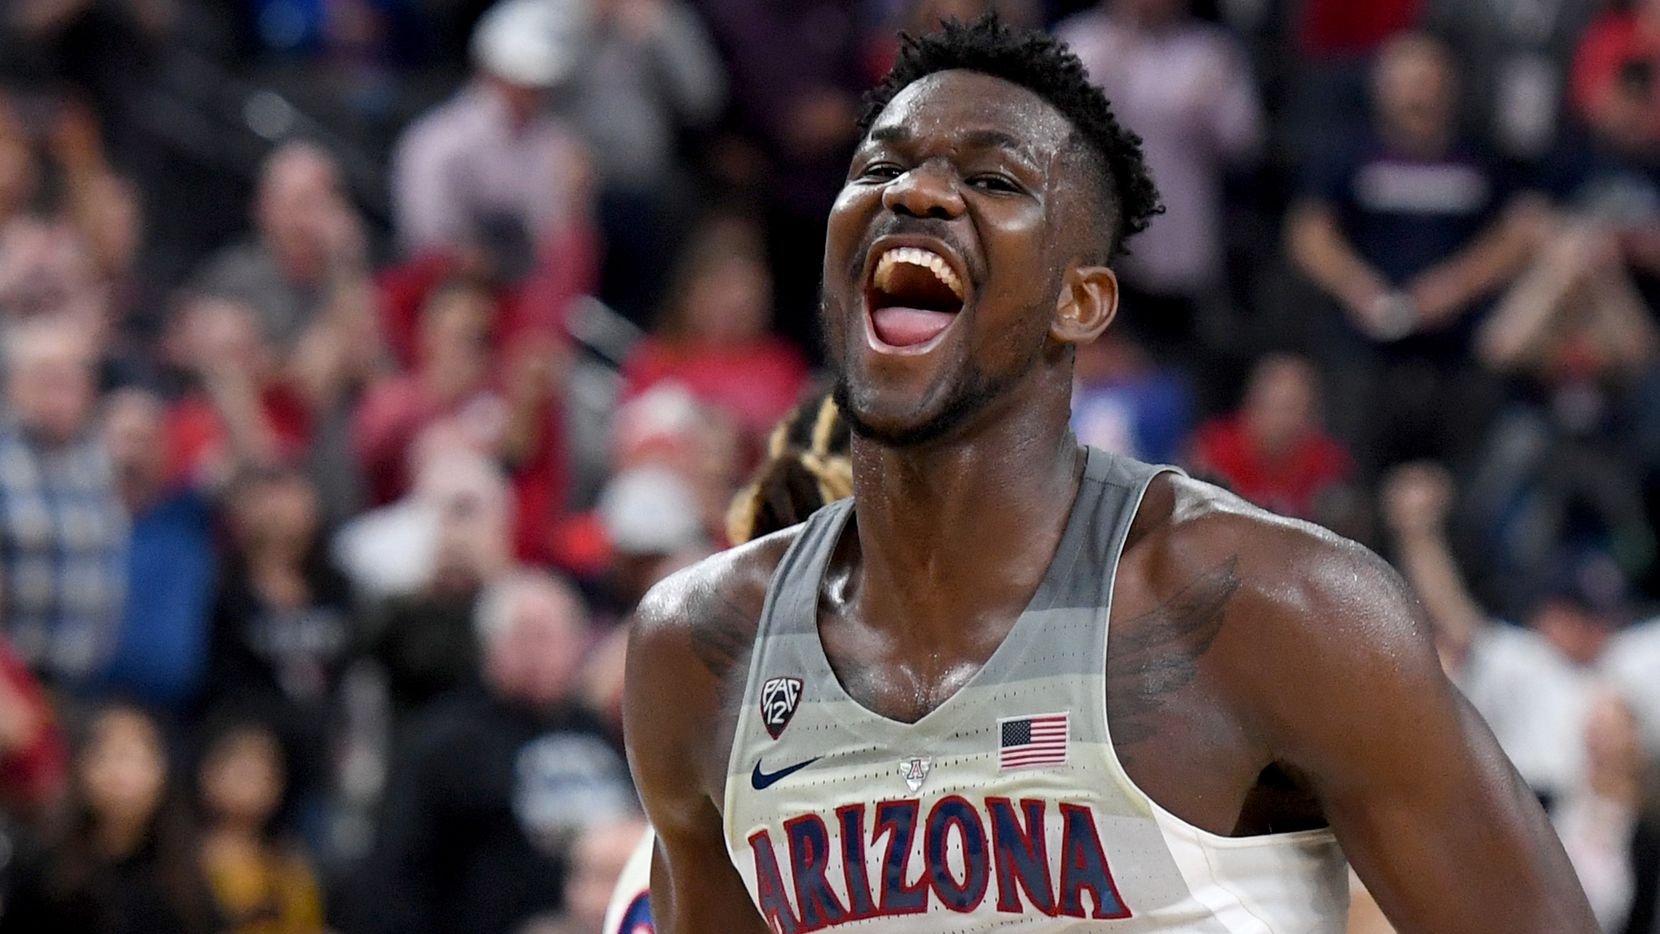 LAS VEGAS, NV - MARCH 10:  Deandre Ayton #13 of the Arizona Wildcats celebrates on the court after the team defeated the USC Trojans 75-61 to win the championship game of the Pac-12 basketball tournament at T-Mobile Arena on March 10, 2018 in Las Vegas, Nevada.  (Photo by Ethan Miller/Getty Images)